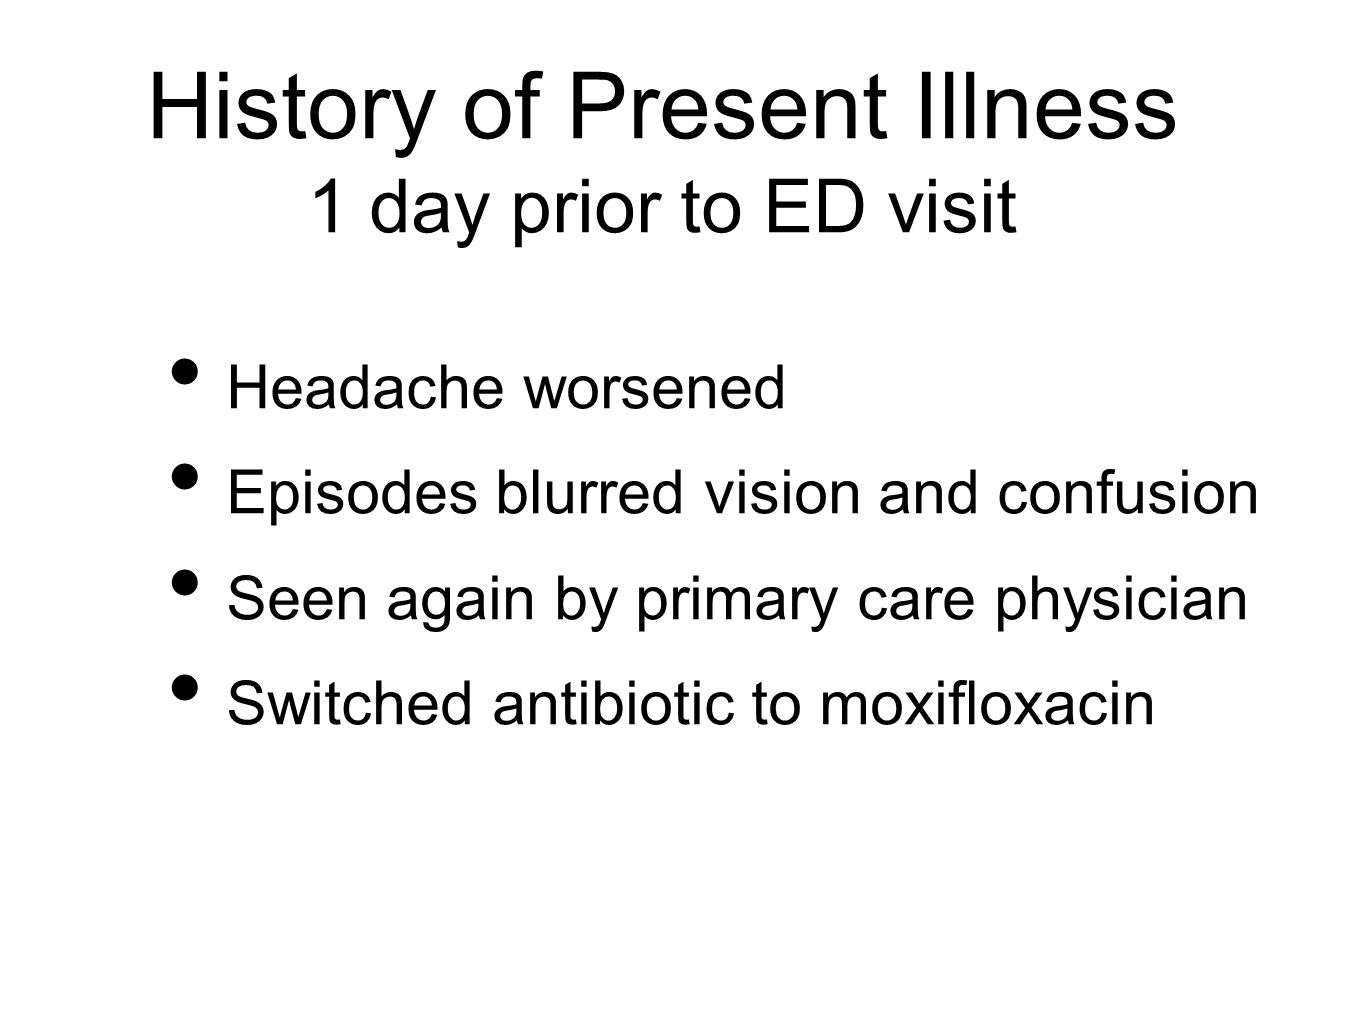 History of Present Illness 1 day prior to ED visit Headache worsened Episodes blurred vision and confusion Seen again by primary care physician Switched antibiotic to moxifloxacin